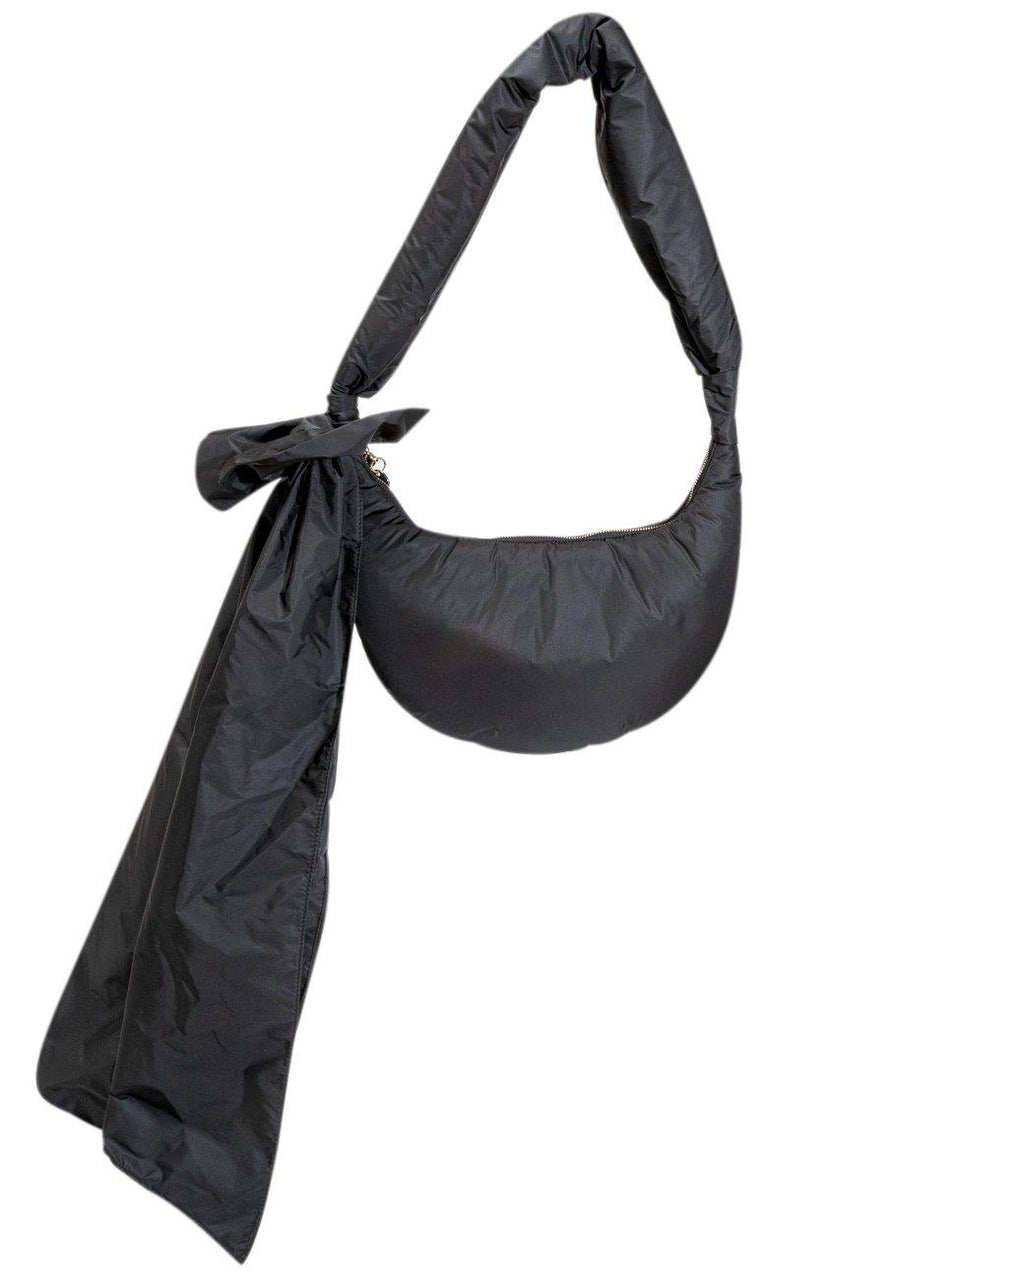 BLACK HOBO SHOULDER BAG